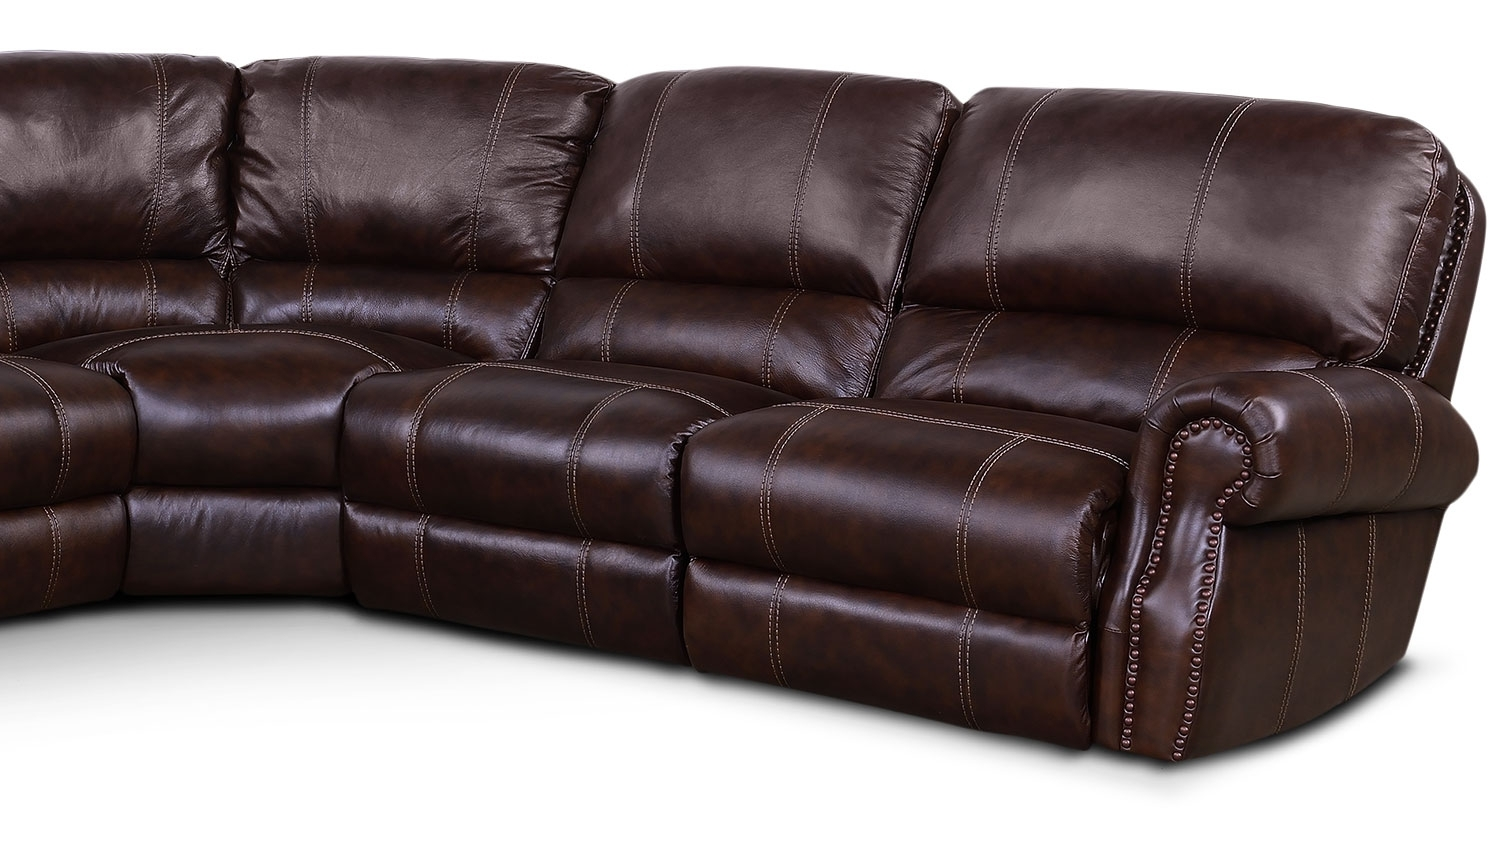 Dartmouth 6-Piece Power Reclining Sectional W/ Left-Facing Chaise intended for Norfolk Grey 6 Piece Sectionals (Image 8 of 30)